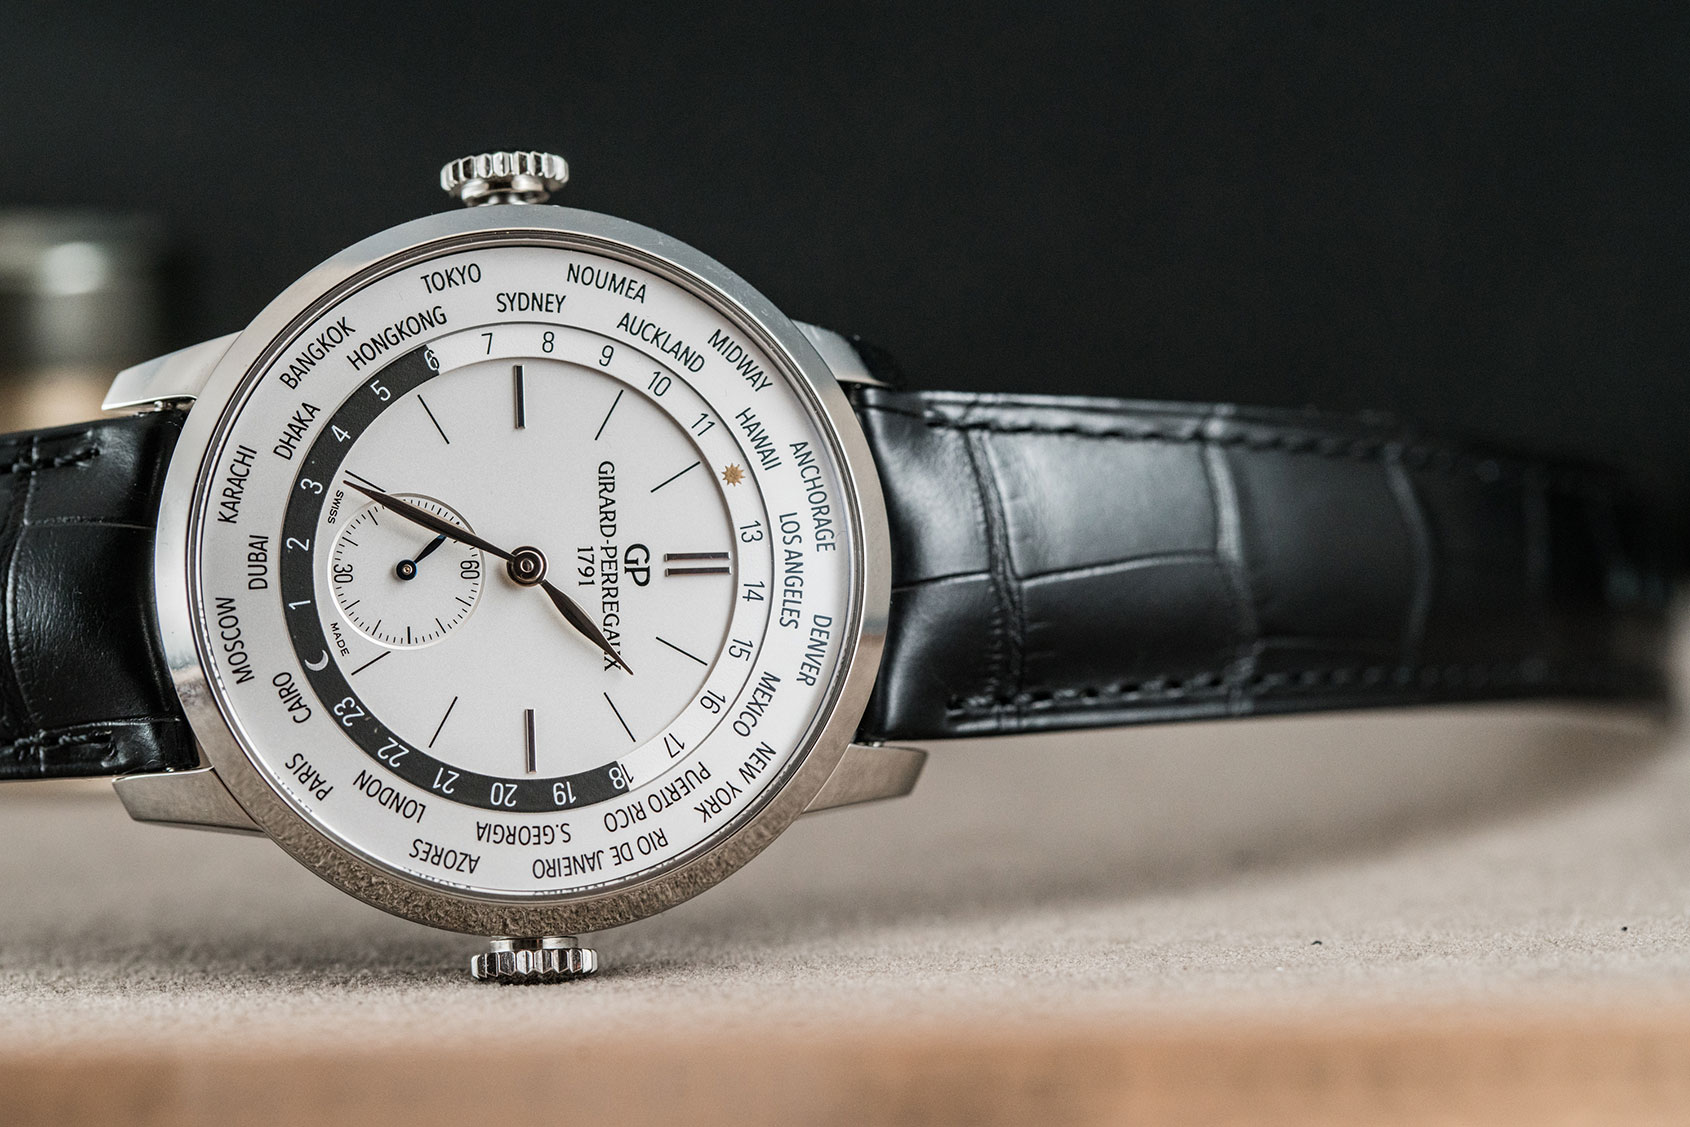 Girard-Perregaux's 1966 WW.TC in Steel – Hands-on Review